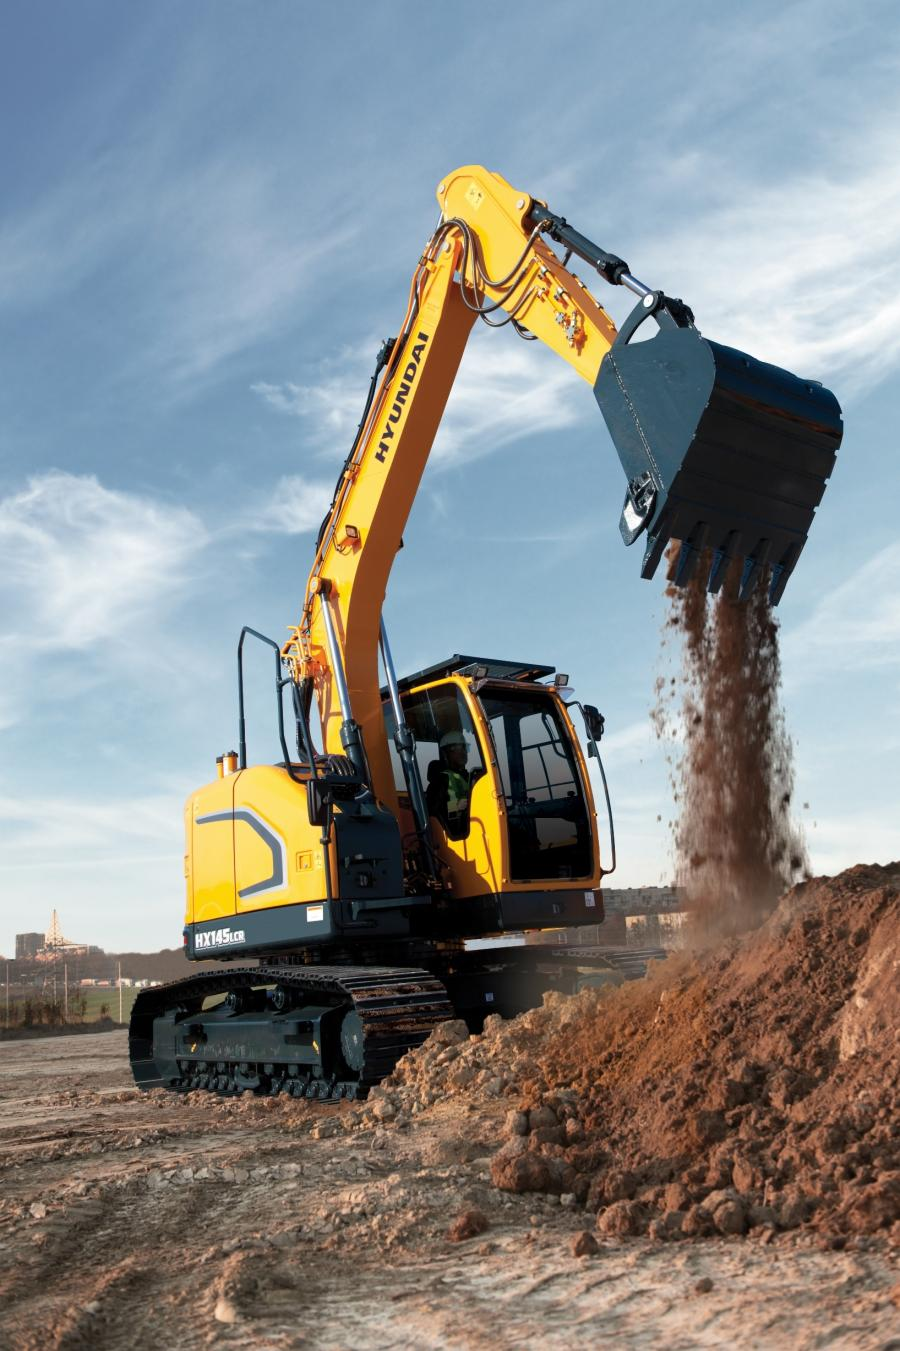 Hyundai Construction Equipment Americas has announced the expansion of its North American authorized dealer network with the addition of four dealerships.